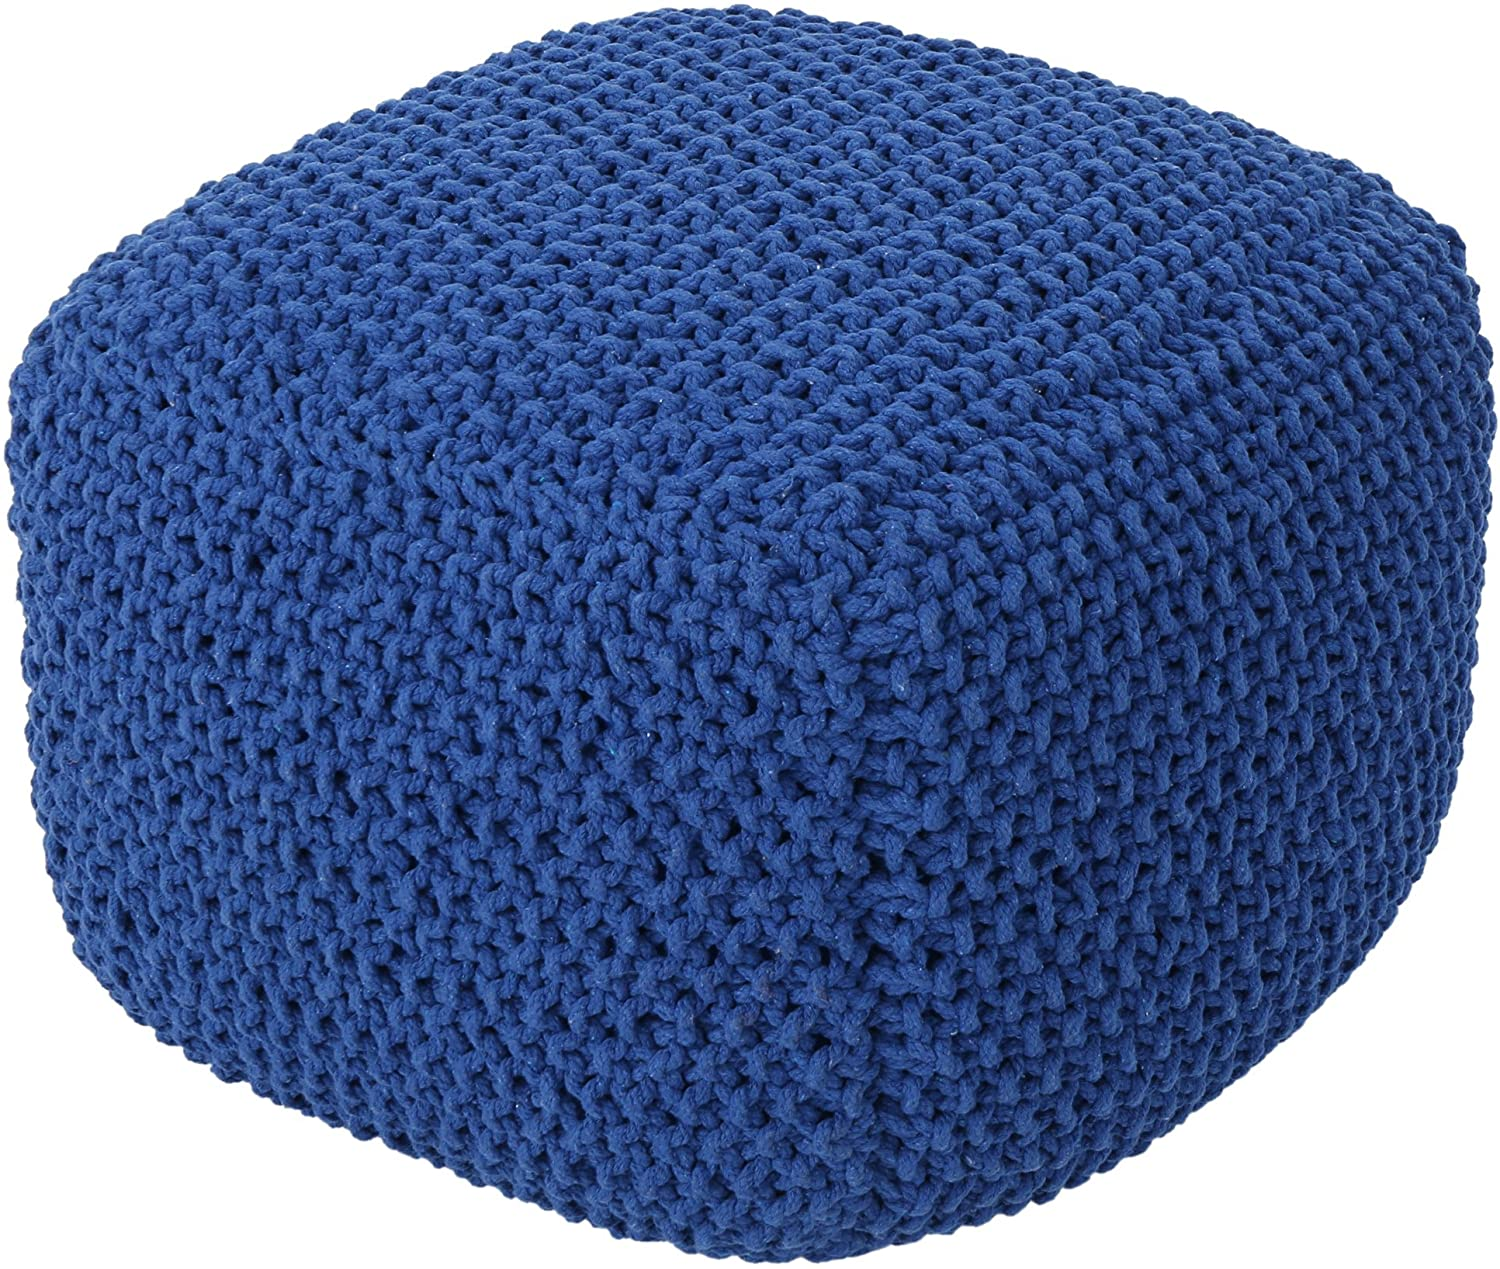 In stock Christopher Knight Max 45% OFF Home Knox Pouf Knitted Cotton Navy